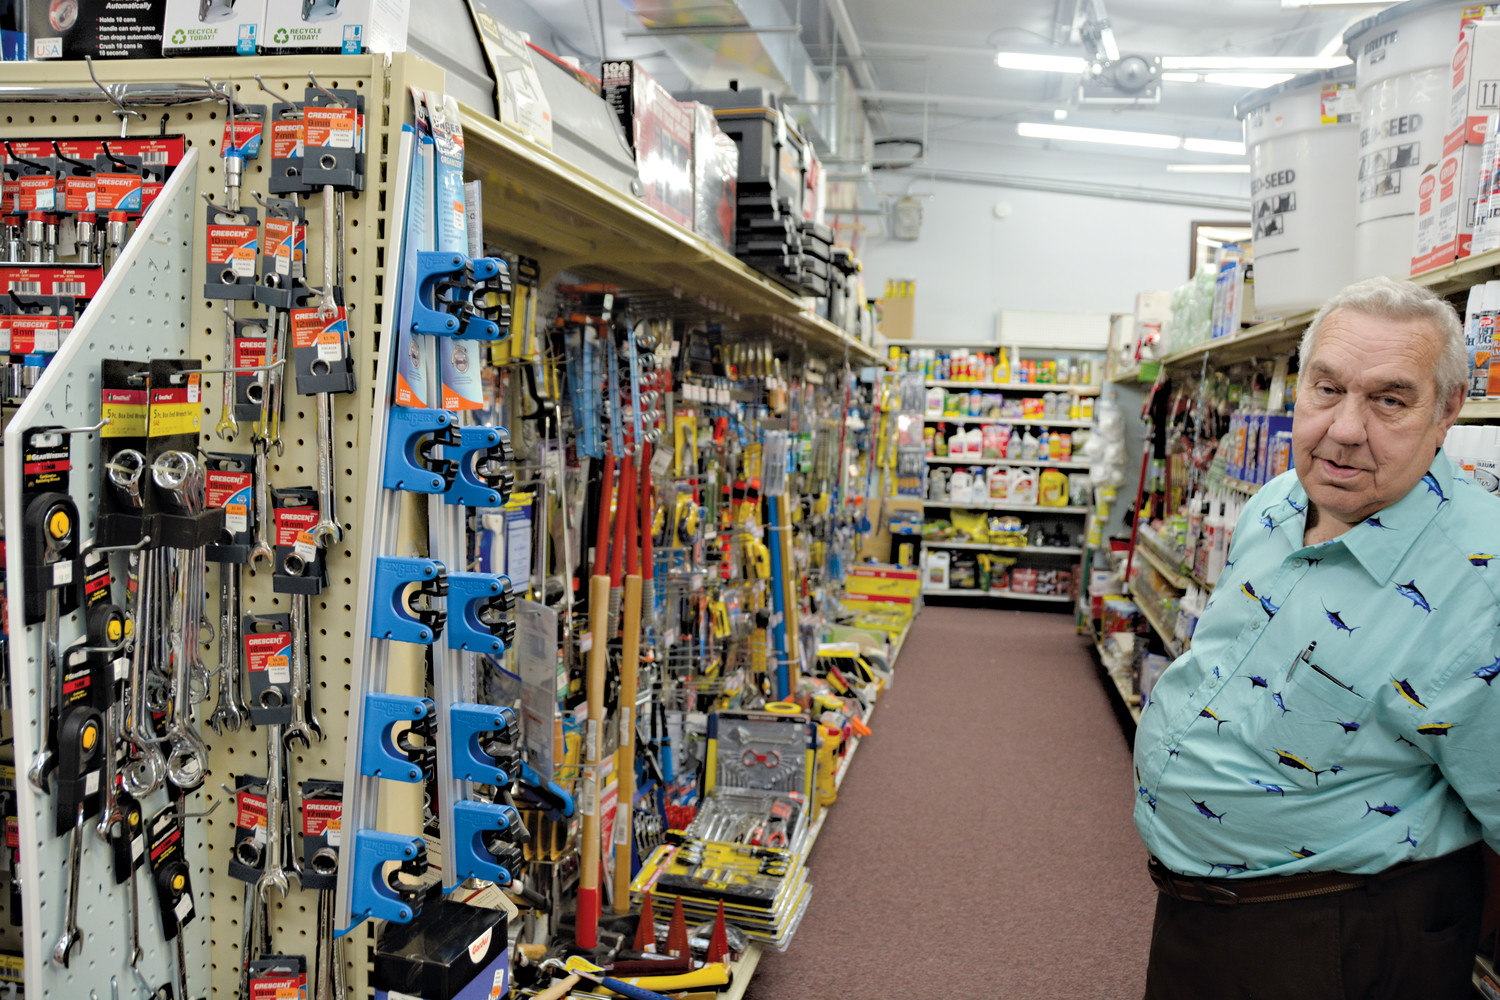 Carl Underwood stands in one of the aisles stocked with a full inventory of hardware items at the Plainview Supply Store in the Plain View community. The store will hold a grand opening of its new store.